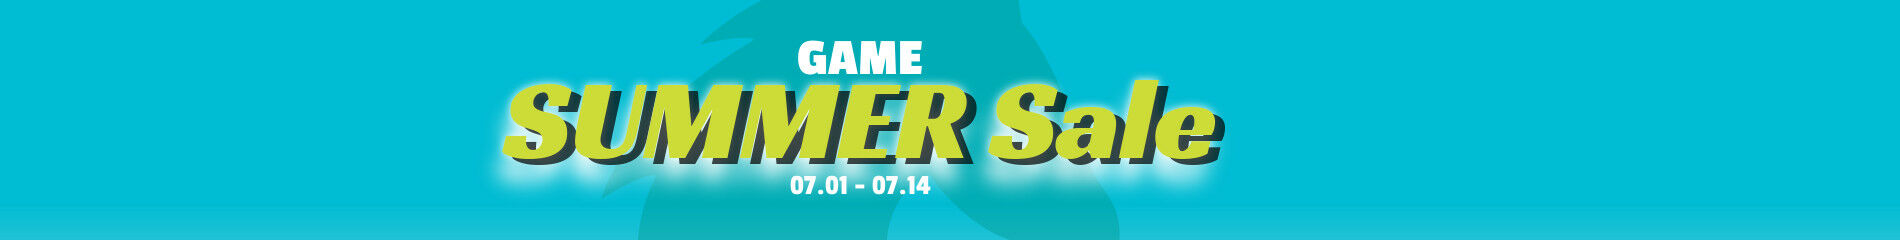 GAME SUMMER Sale